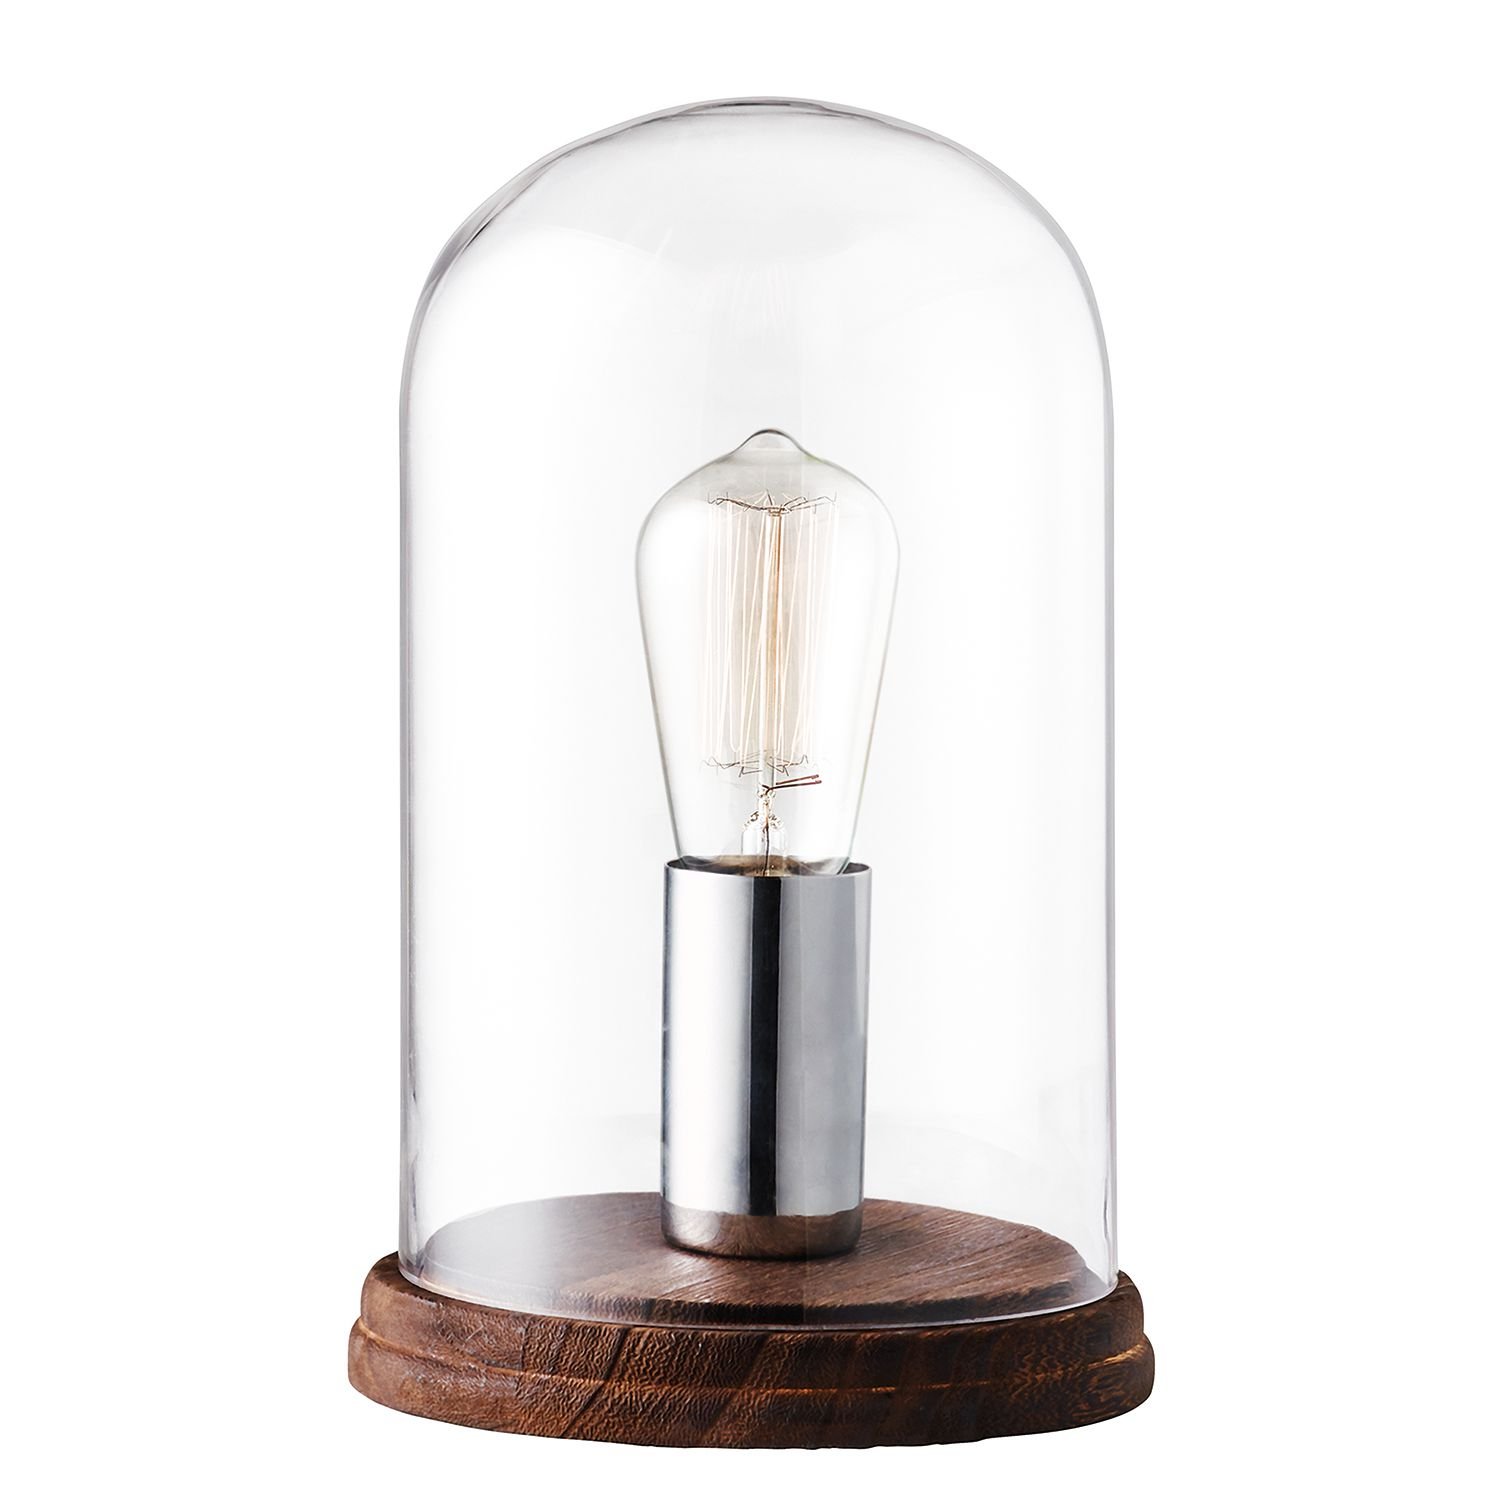 EEK A++, Lampe de table Manola - Verre / Métal - 1 ampoule - Chrome, Herstal